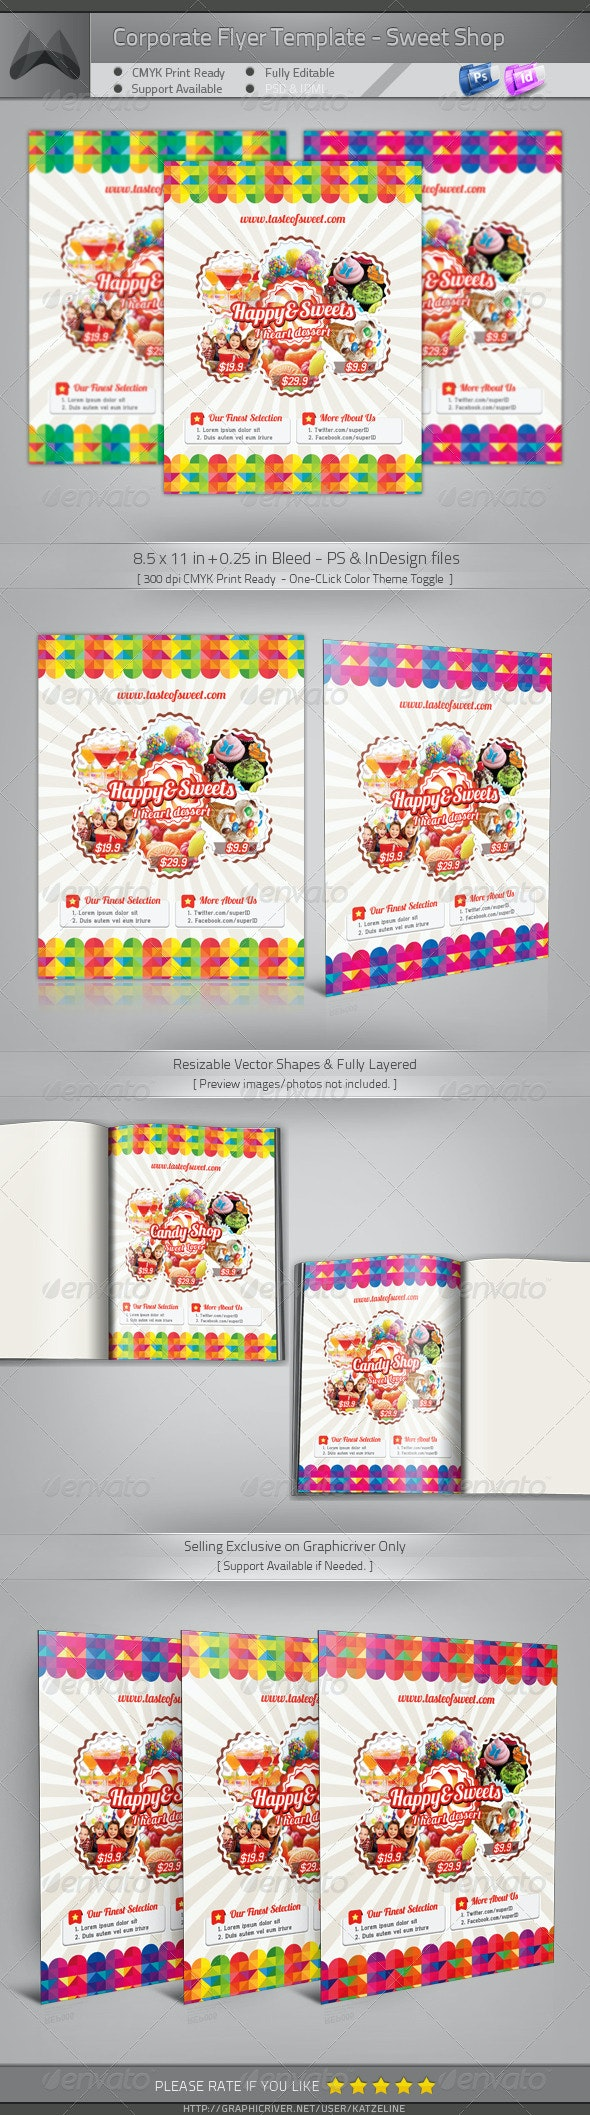 Corporate Flyer - Candy Love - Commerce Flyers